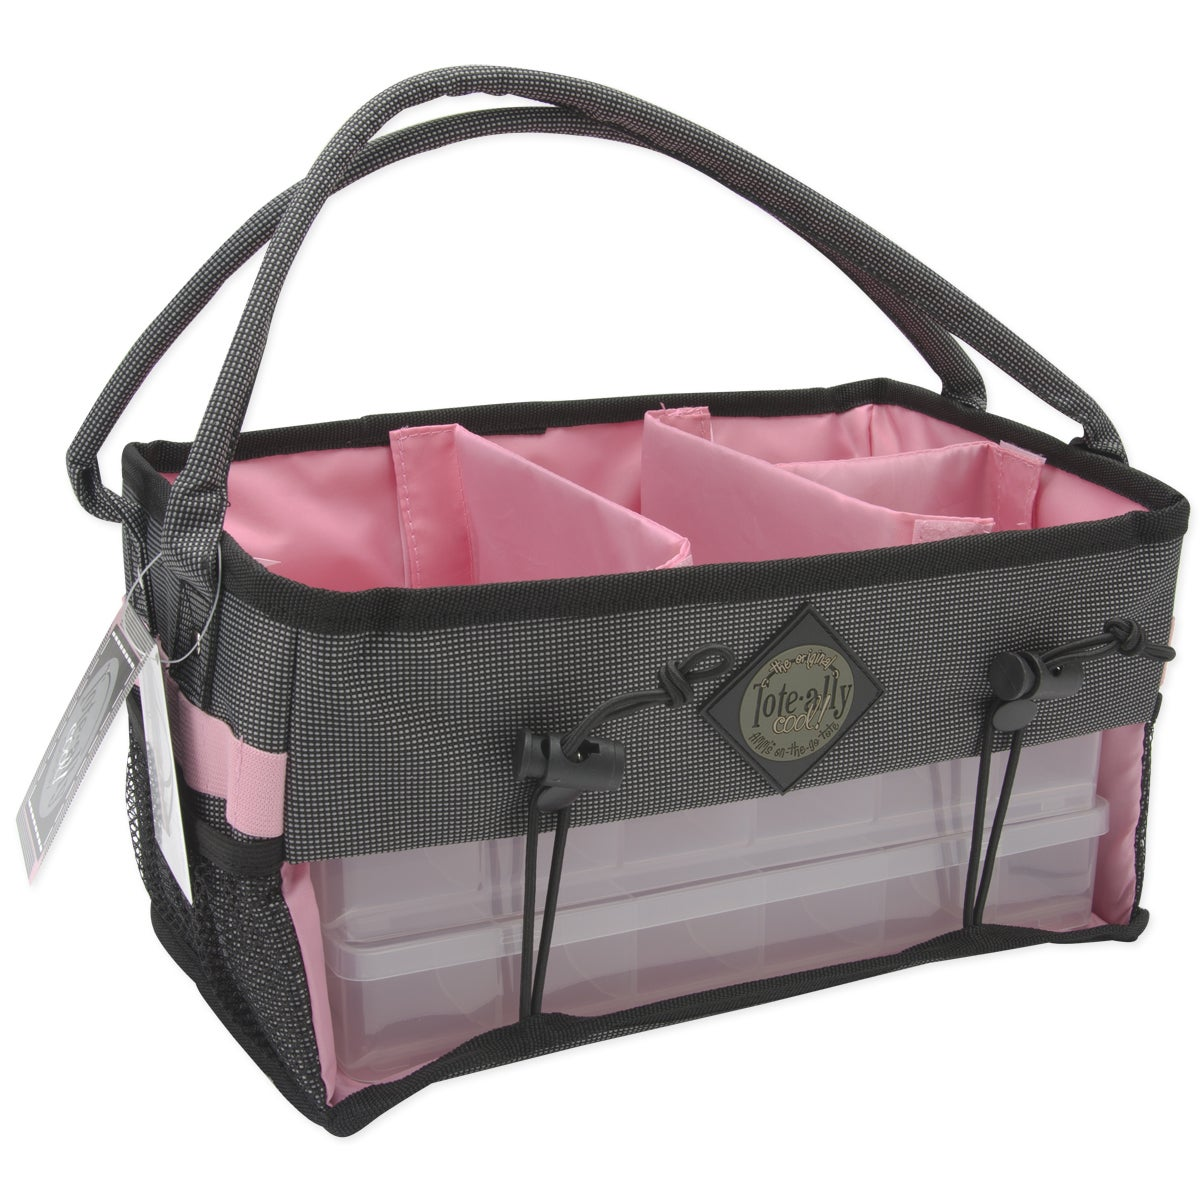 Tote-Ally Cool! Caddy